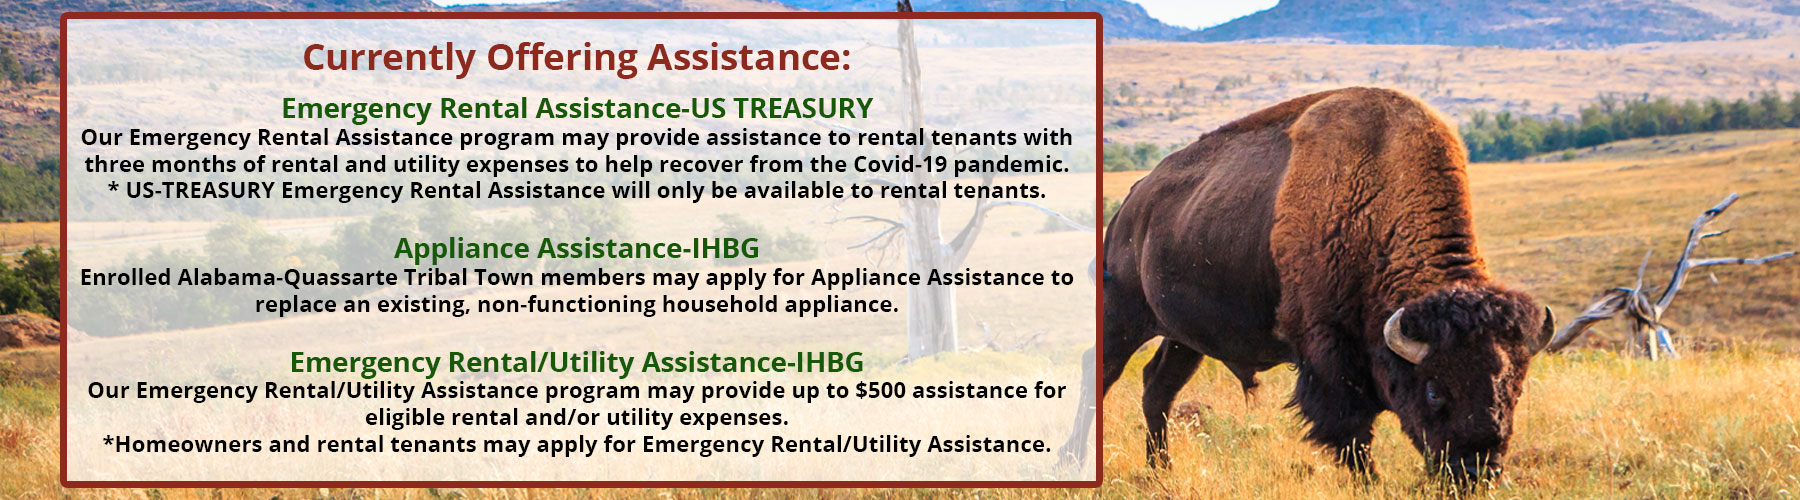 Currently Offering Assistance: Emergency Rental Assistance-US TREASURY Our Emergency Rental Assistance program may provide assistance to rental tenants with three months of rental and utility expenses to help recover from the Covid-19 pandemic.  * US-TREASURY Emergency Rental Assistance will only be available to rental tenants.  Appliance Assistance-IHBG Enrolled Alabama-Quassarte Tribal Town members may apply for Appliance Assistance to replace an existing, non-functioning household appliance.   Emergency Rental/Utility Assistance-IHBG Our Emergency Rental/Utility Assistance program may provide up to $500 assistance for eligible rental and/or utility expenses.  *Homeowners and rental tenants may apply for Emergency Rental/Utility Assistance.